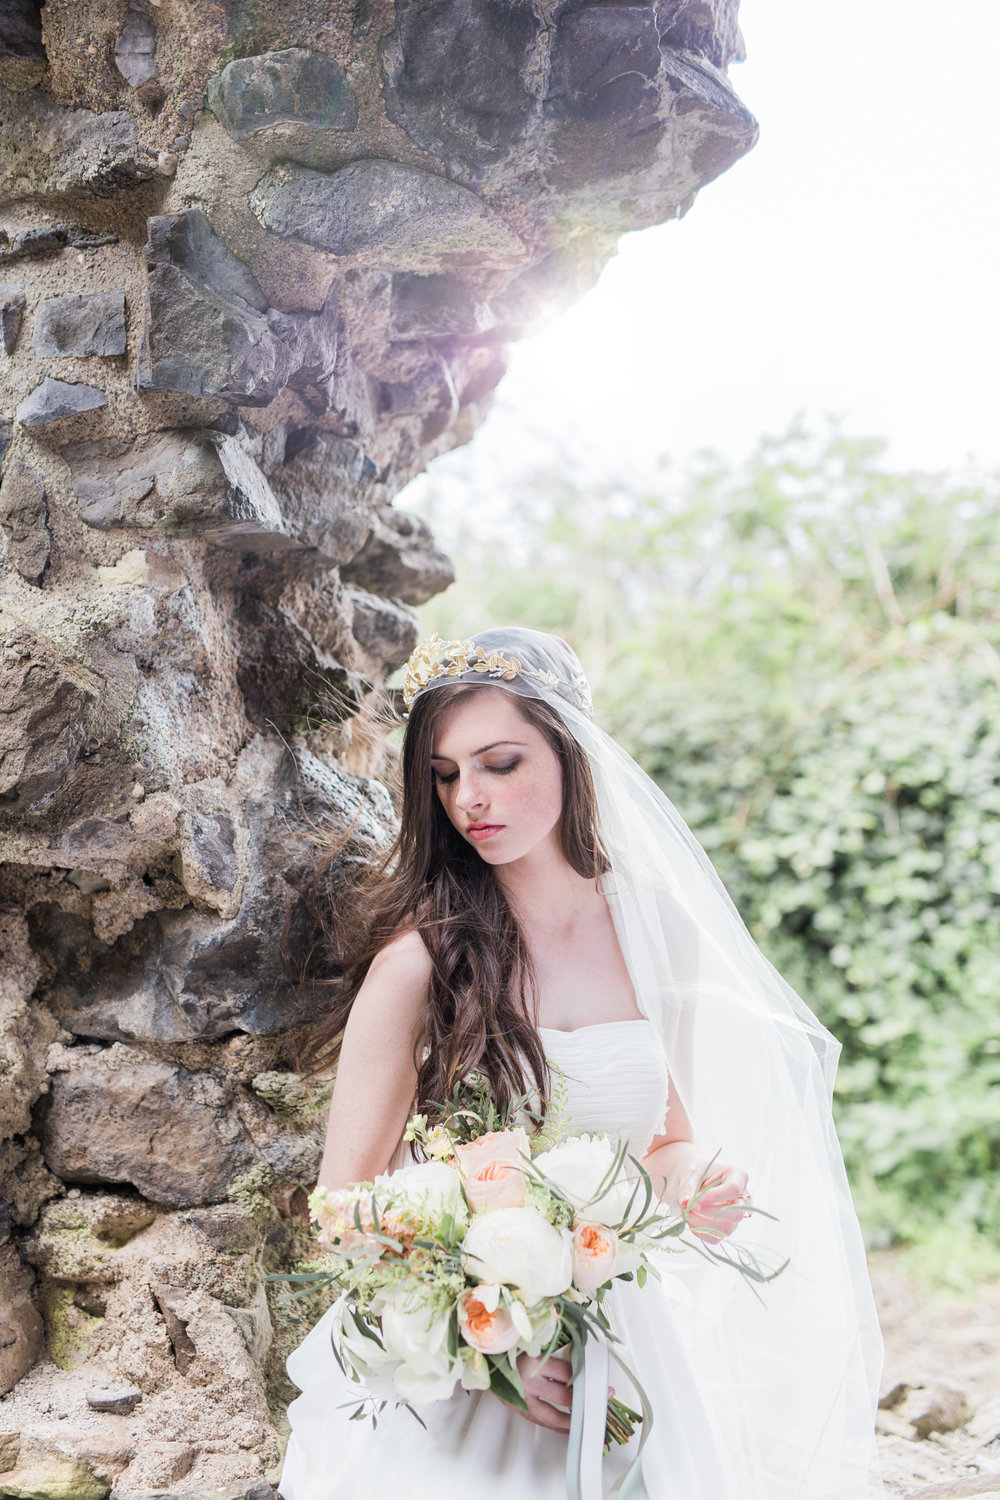 suzanne_li_photography_BRIDAL_SHOOT_SCOTLAND-7.jpg